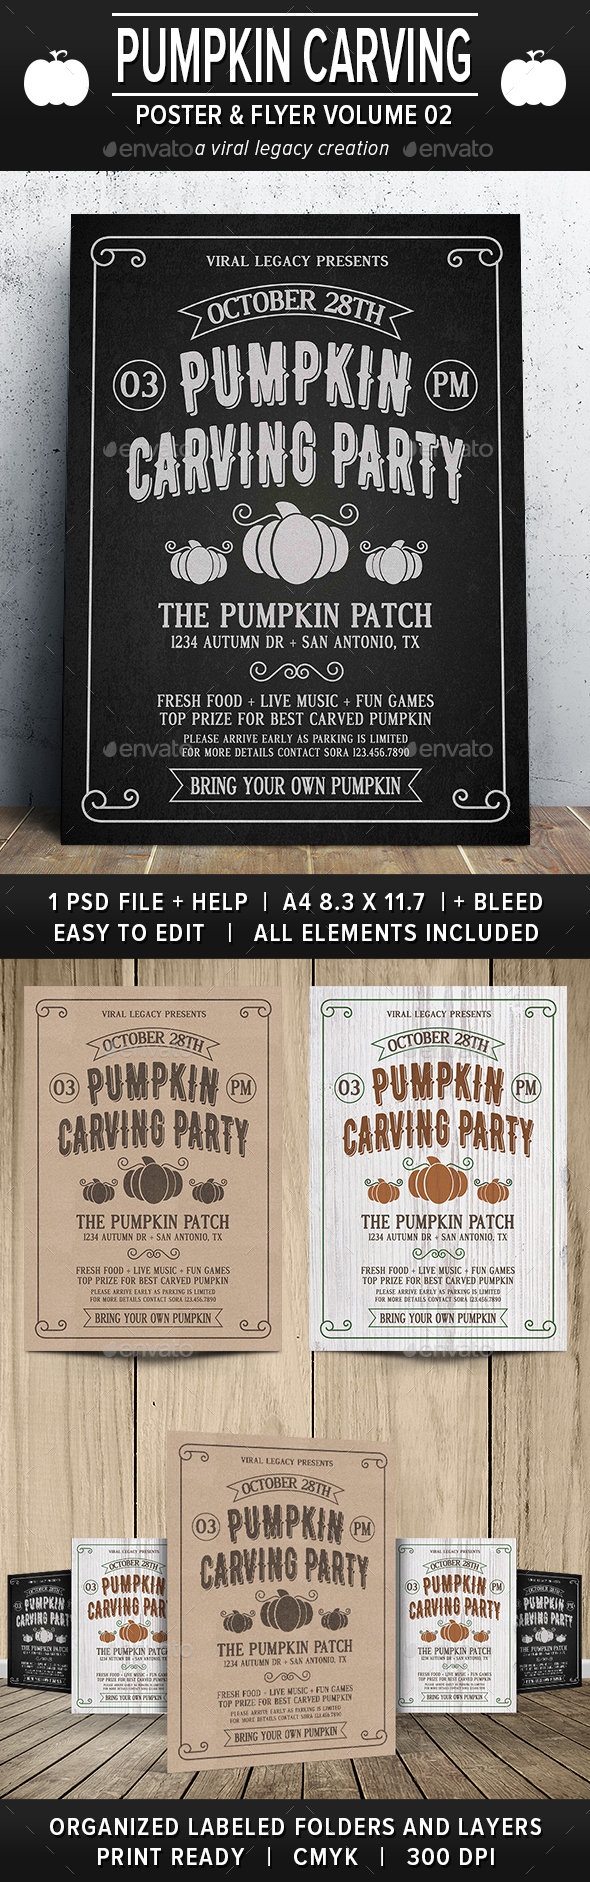 Pumpkin Carving Party Poster / Flyer V02 - Flyers Print Templates